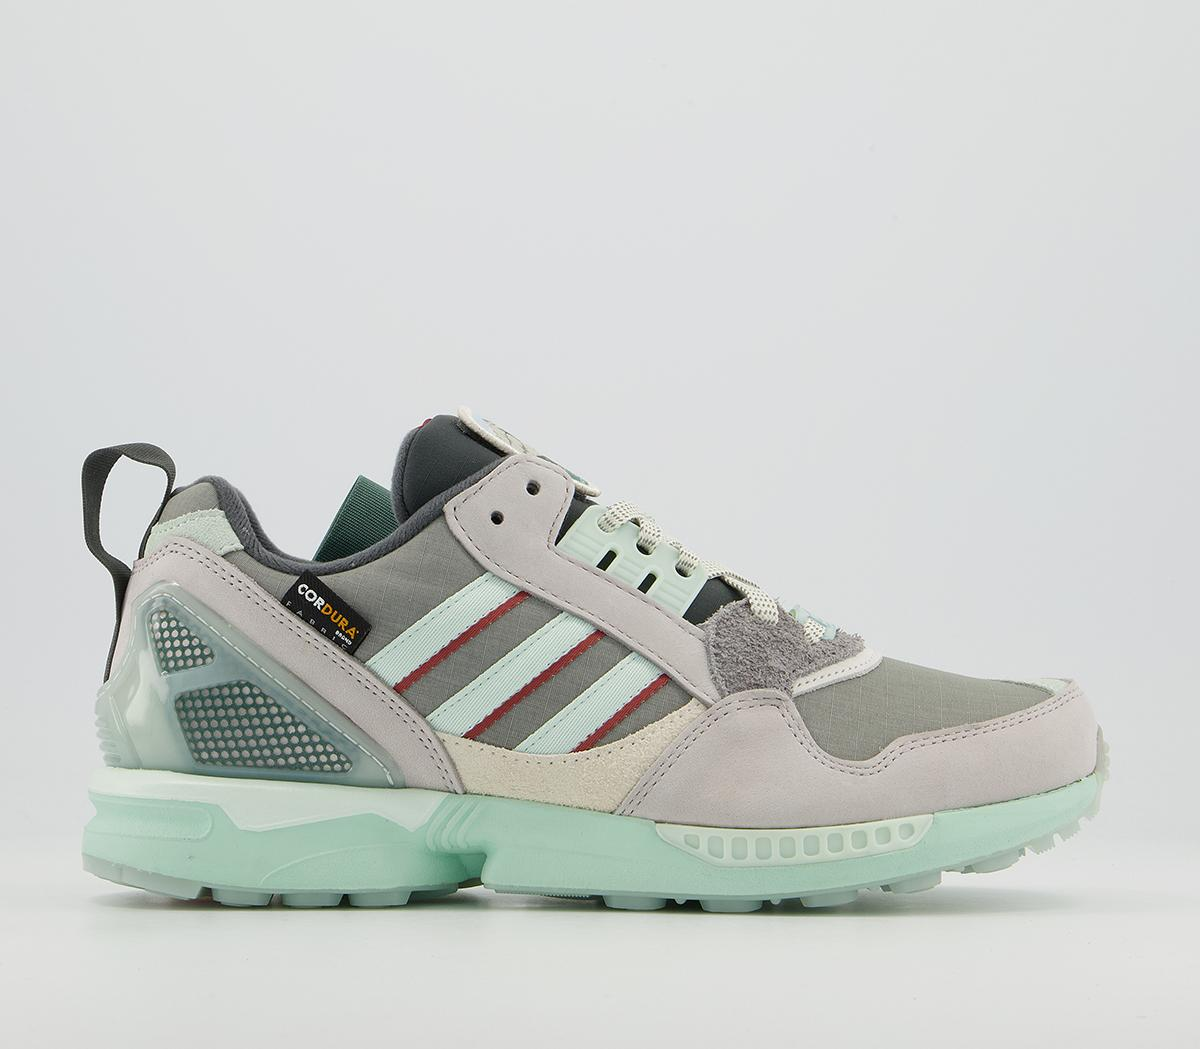 Zx 9000 Trainers